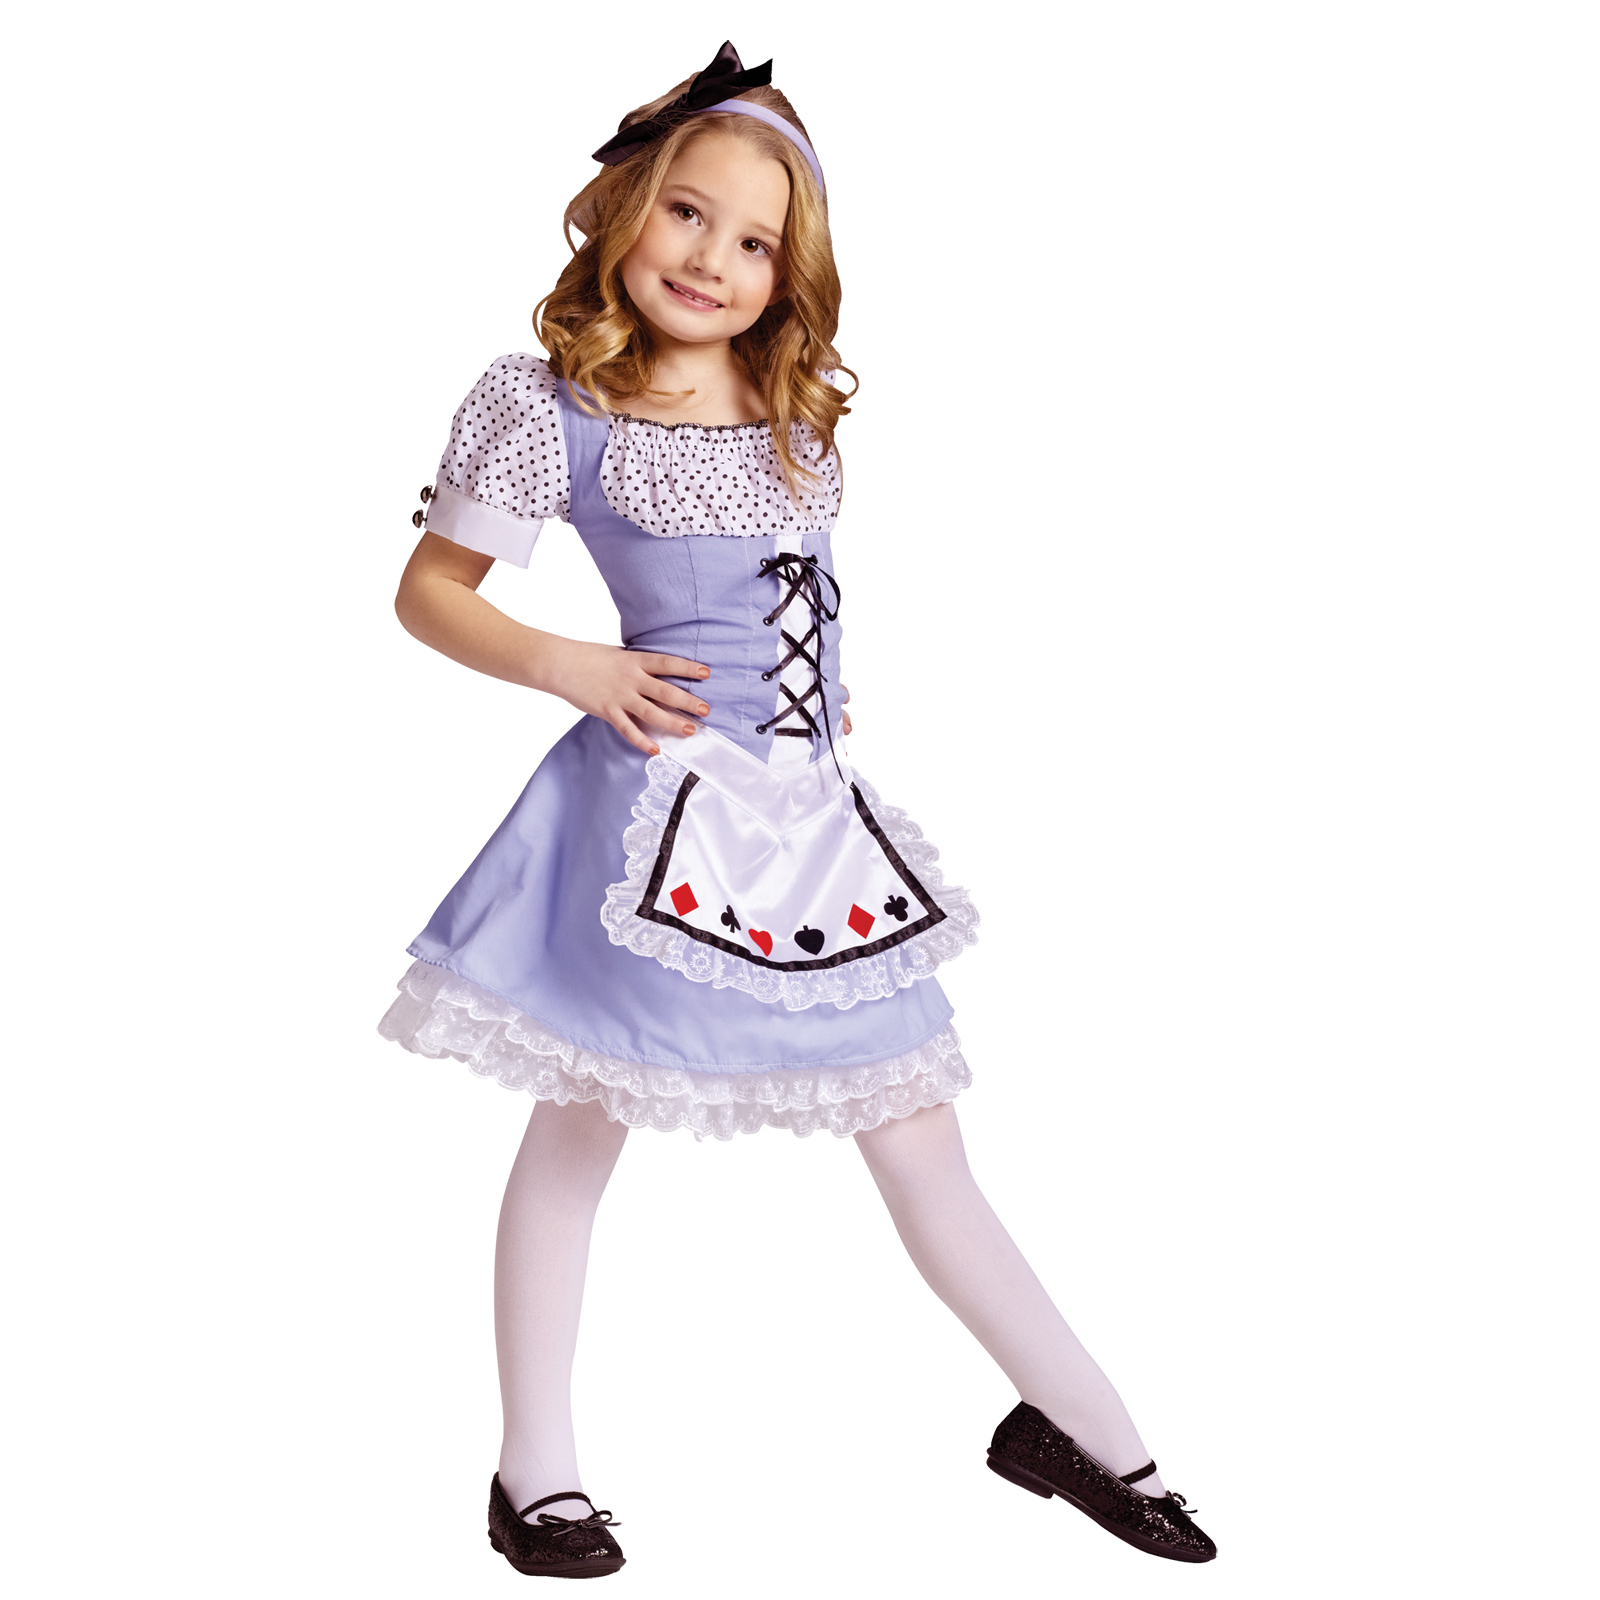 School Skirts Kmart Lace Halloween Costume Kmart